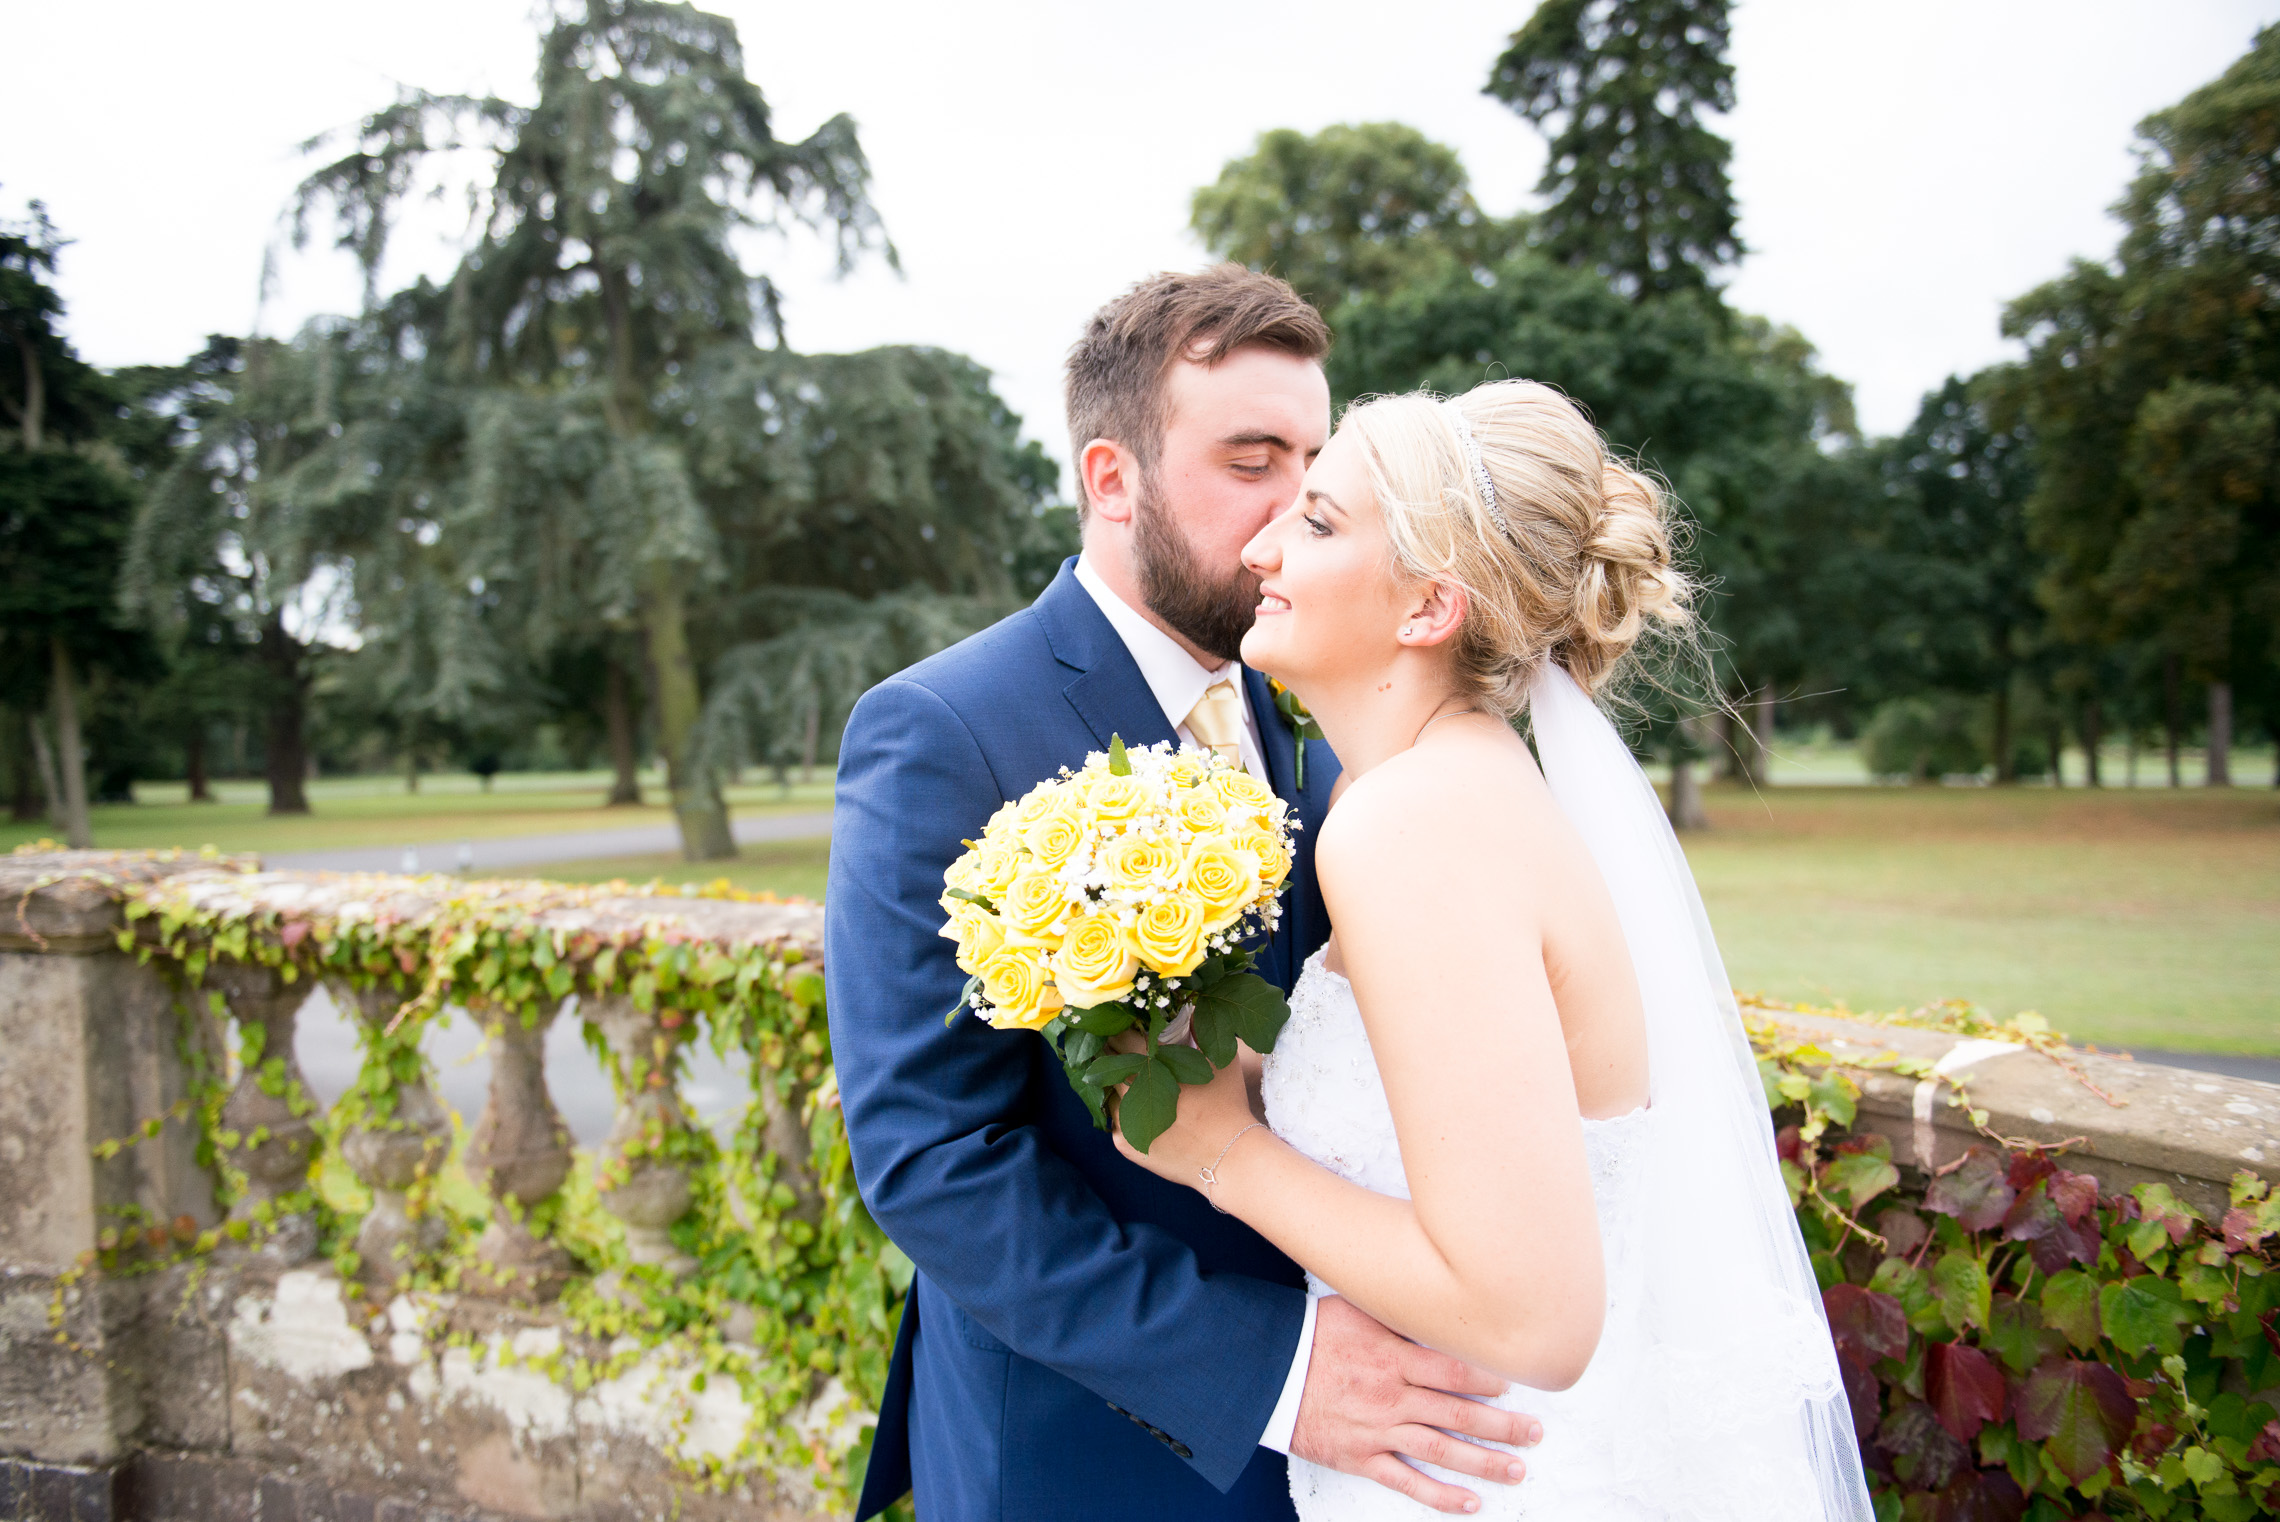 Yellow and Blue Themed wedding, Chataeu Impney Worcestershire